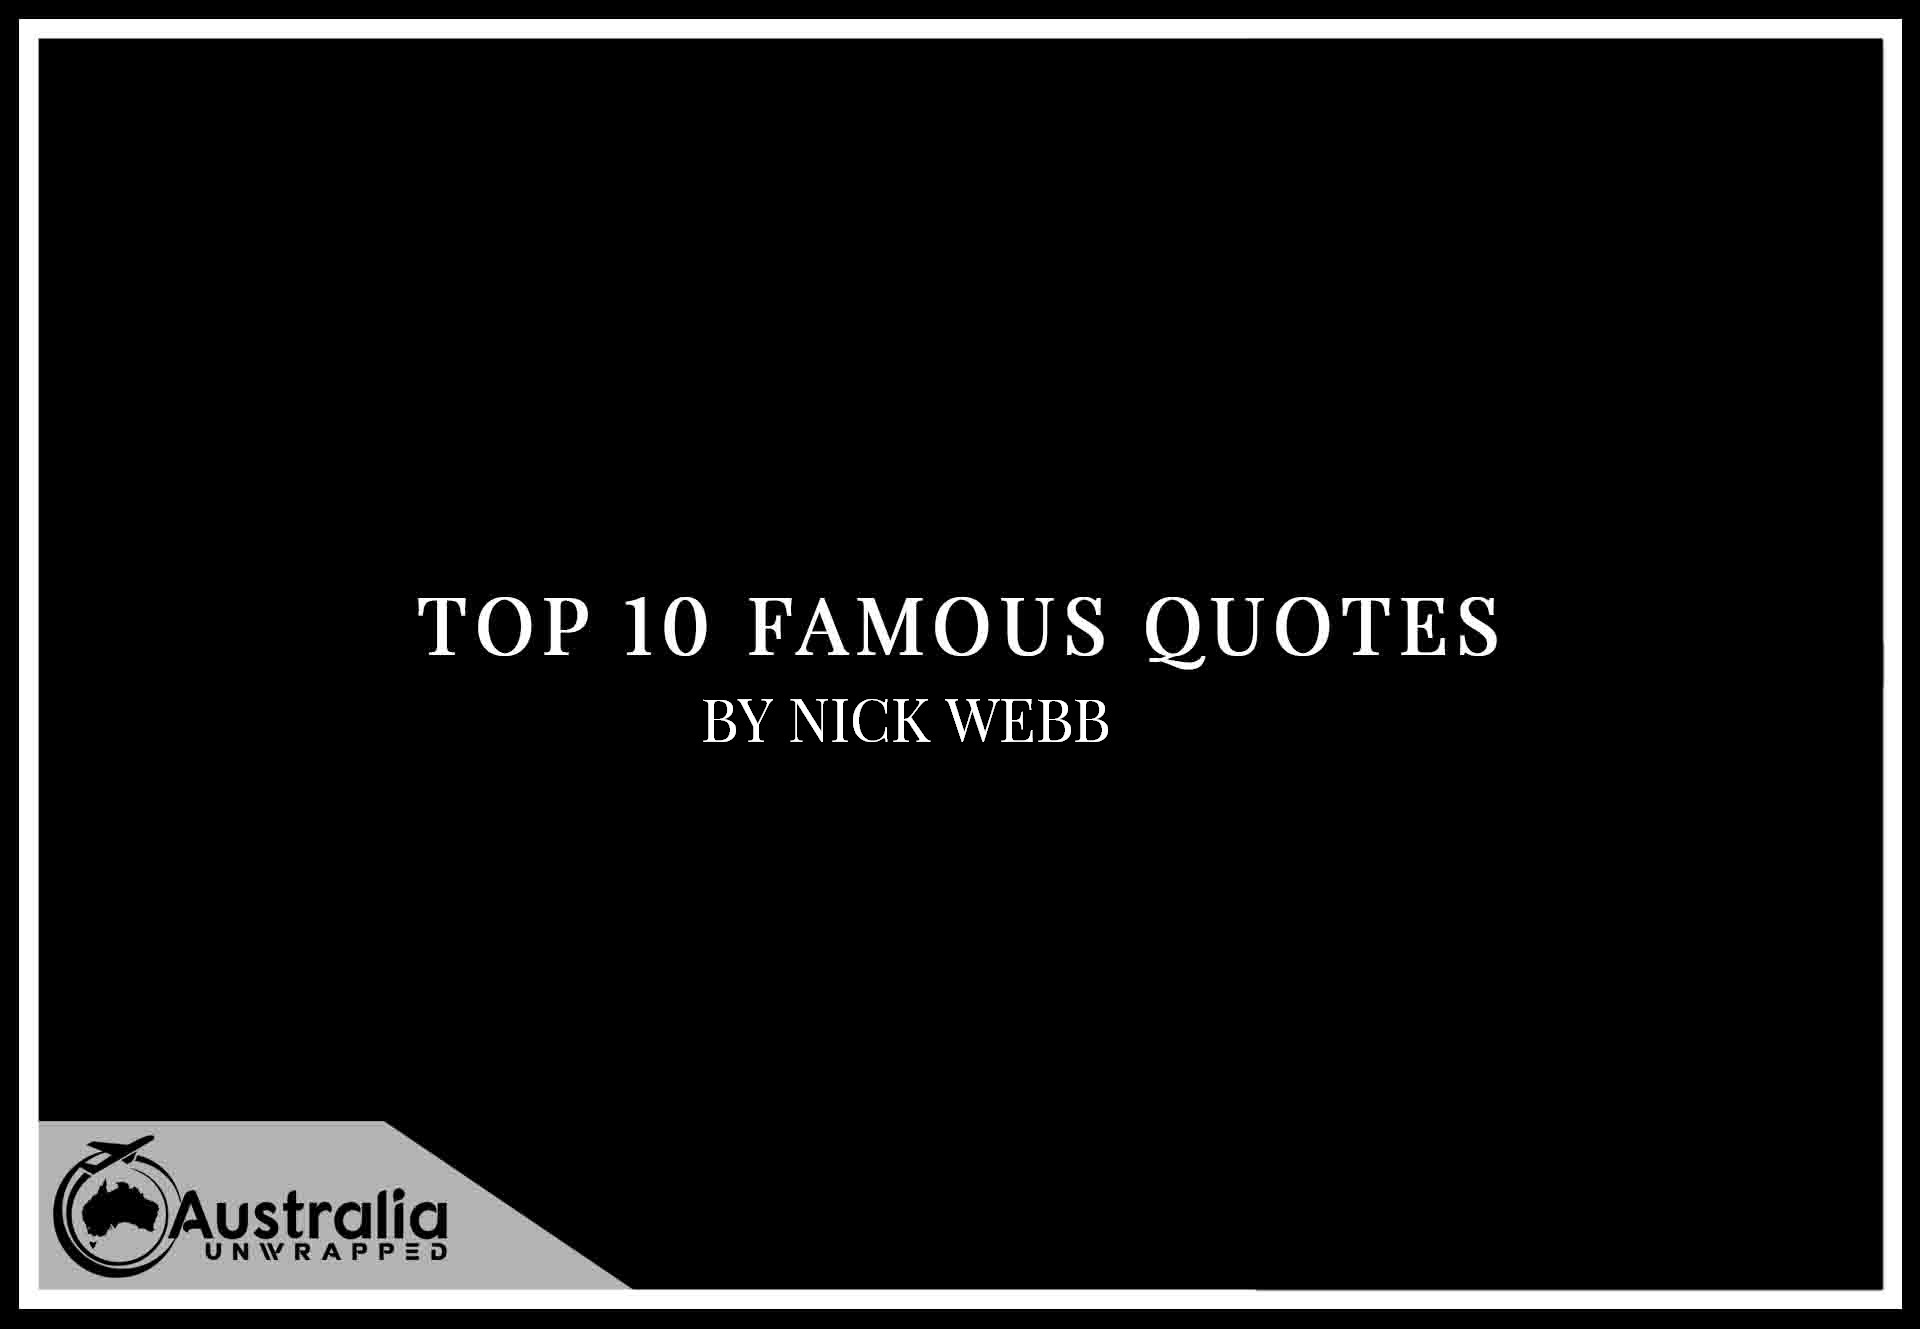 Top 10 Famous Quotes by Author Nick Webb